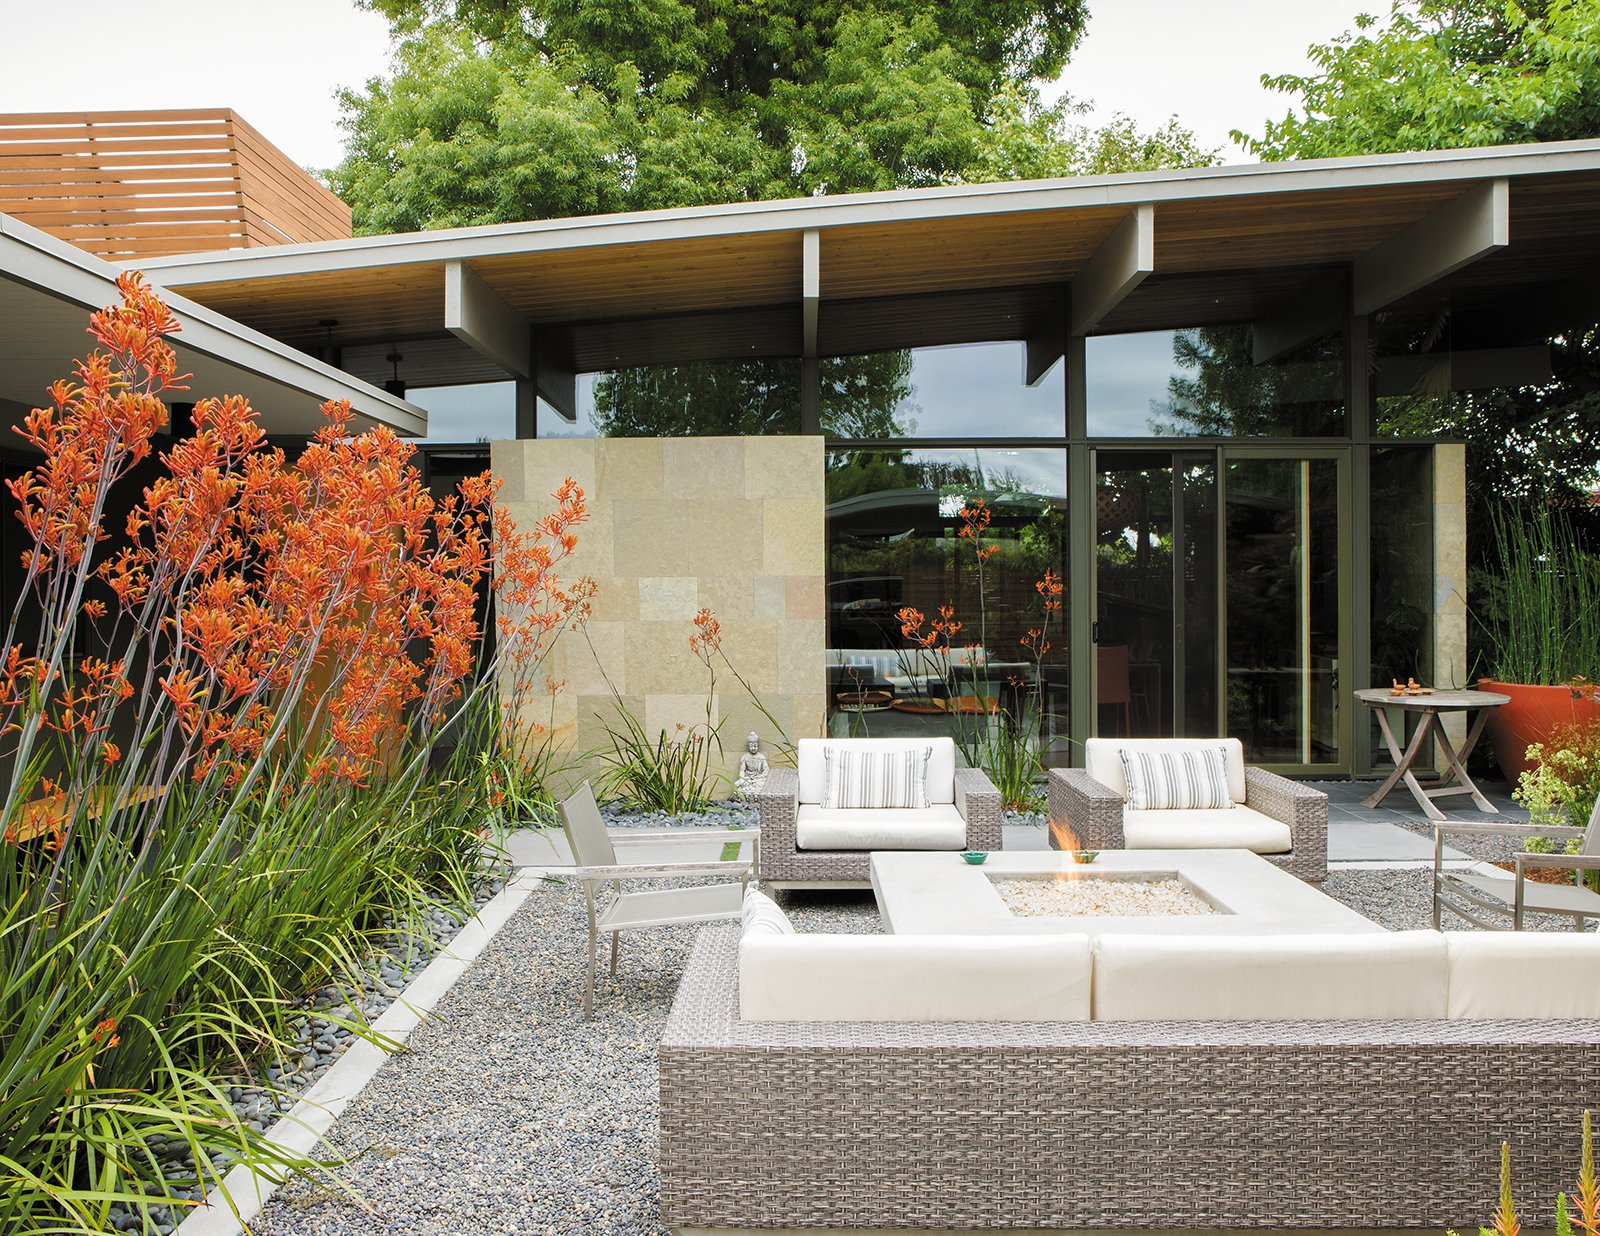 Exterior, Mid-Century Building Type, and Shed RoofLine Behind the resin screen is the property's centerpiece: an entry garden that Trainor recast as an outdoor living room. Sparta stacking chairs, a deep-wicker Baia sofa, and matching Baia armchairs, all by Mamagreen, are arranged around a custom concrete fire pit. Orange kangaroo paws lean in from the sides, creating a sense of privacy without sacrificing views. It's a welcoming space that serves as a casual gathering spot when the weather cooperates.  Photo 9 of 9 in Creative Landscape Design for a Renovated Eichler in California